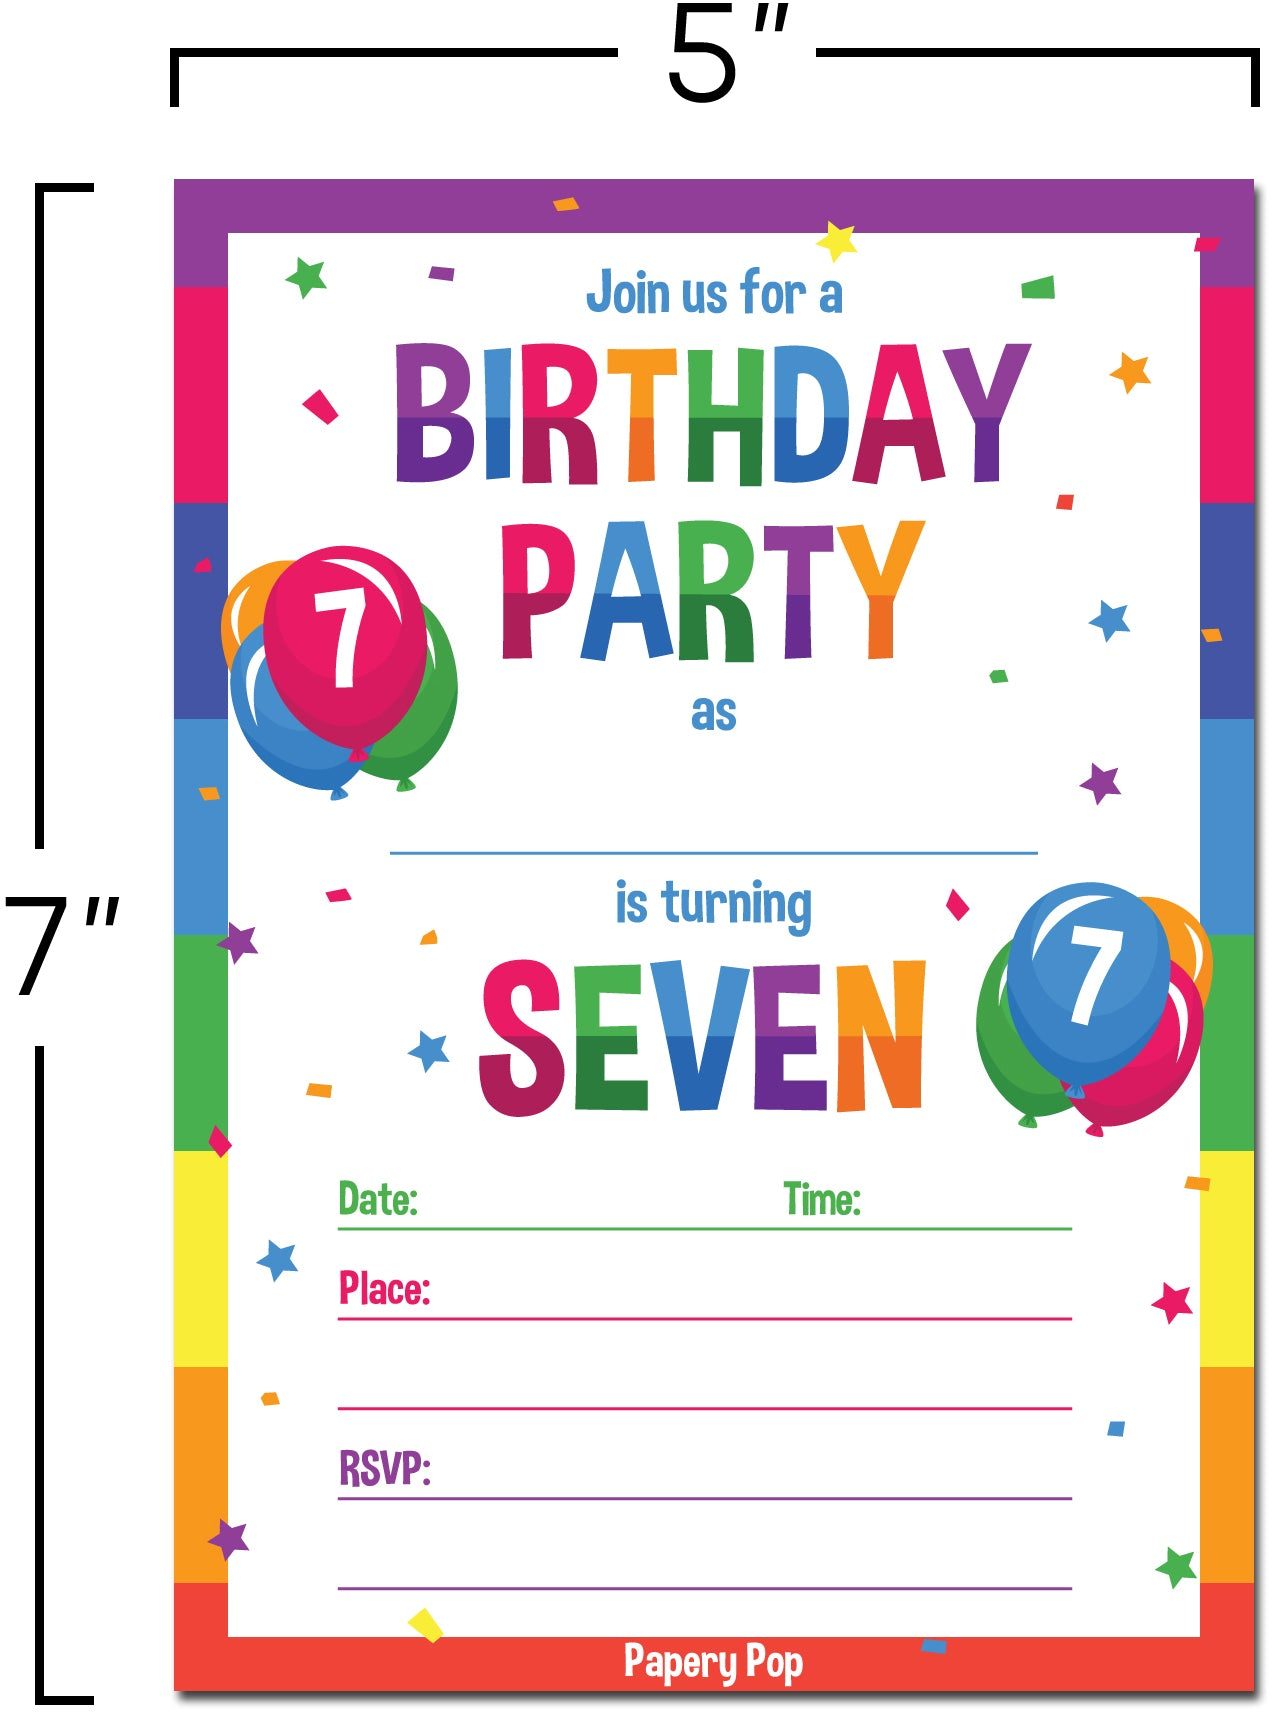 7 year old birthday party invitations with envelopes 15 count